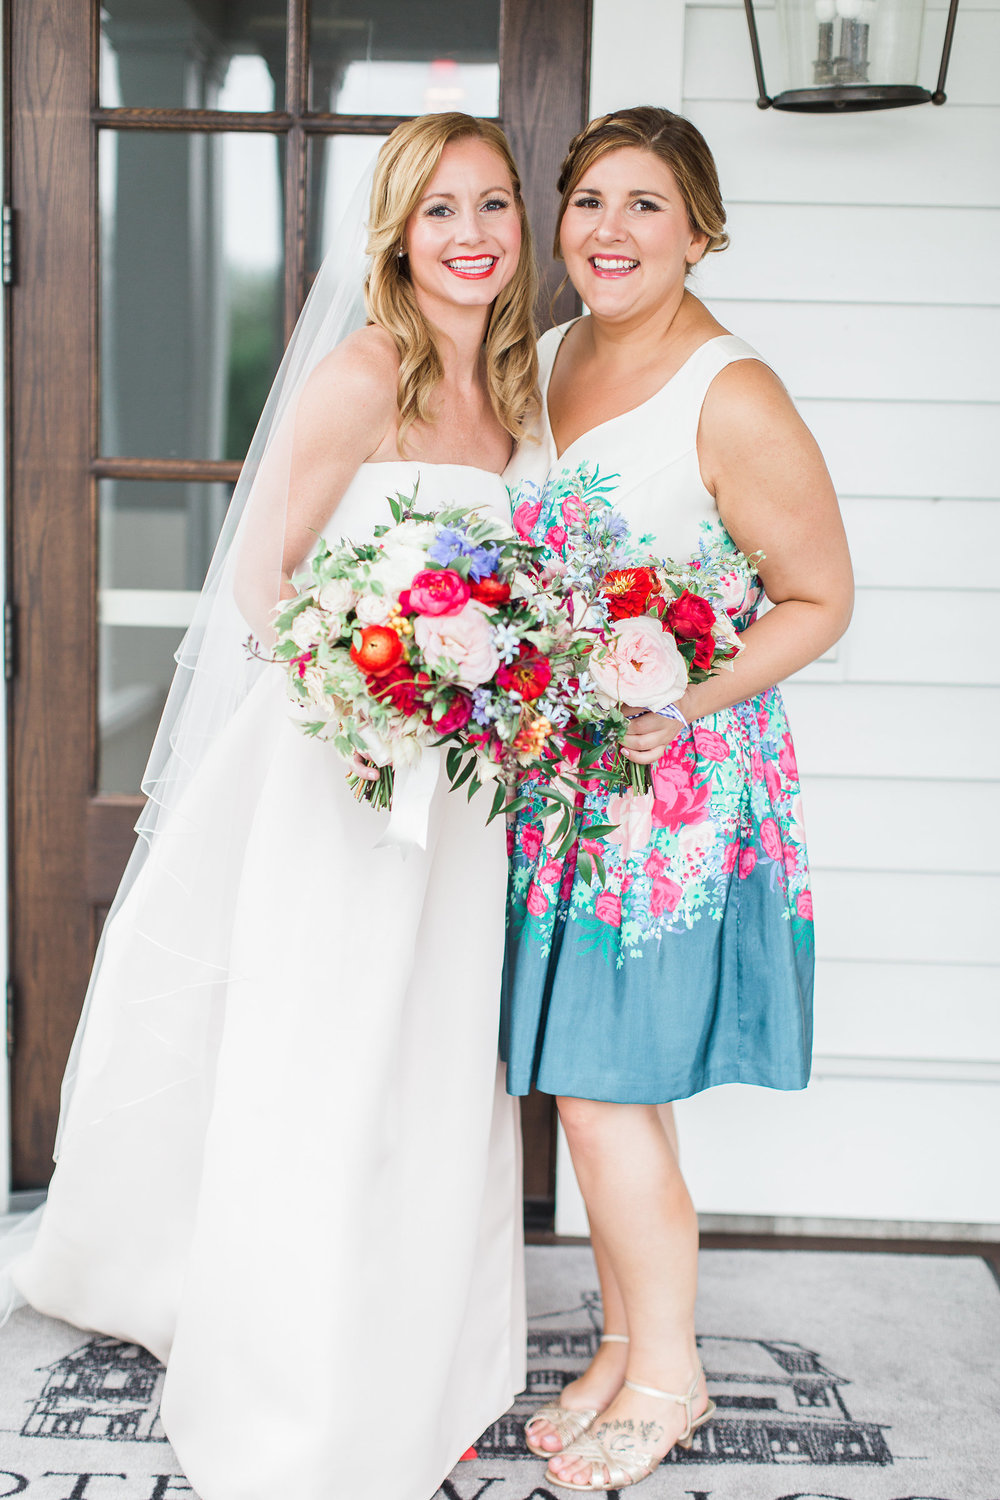 bride and friend holding flowers